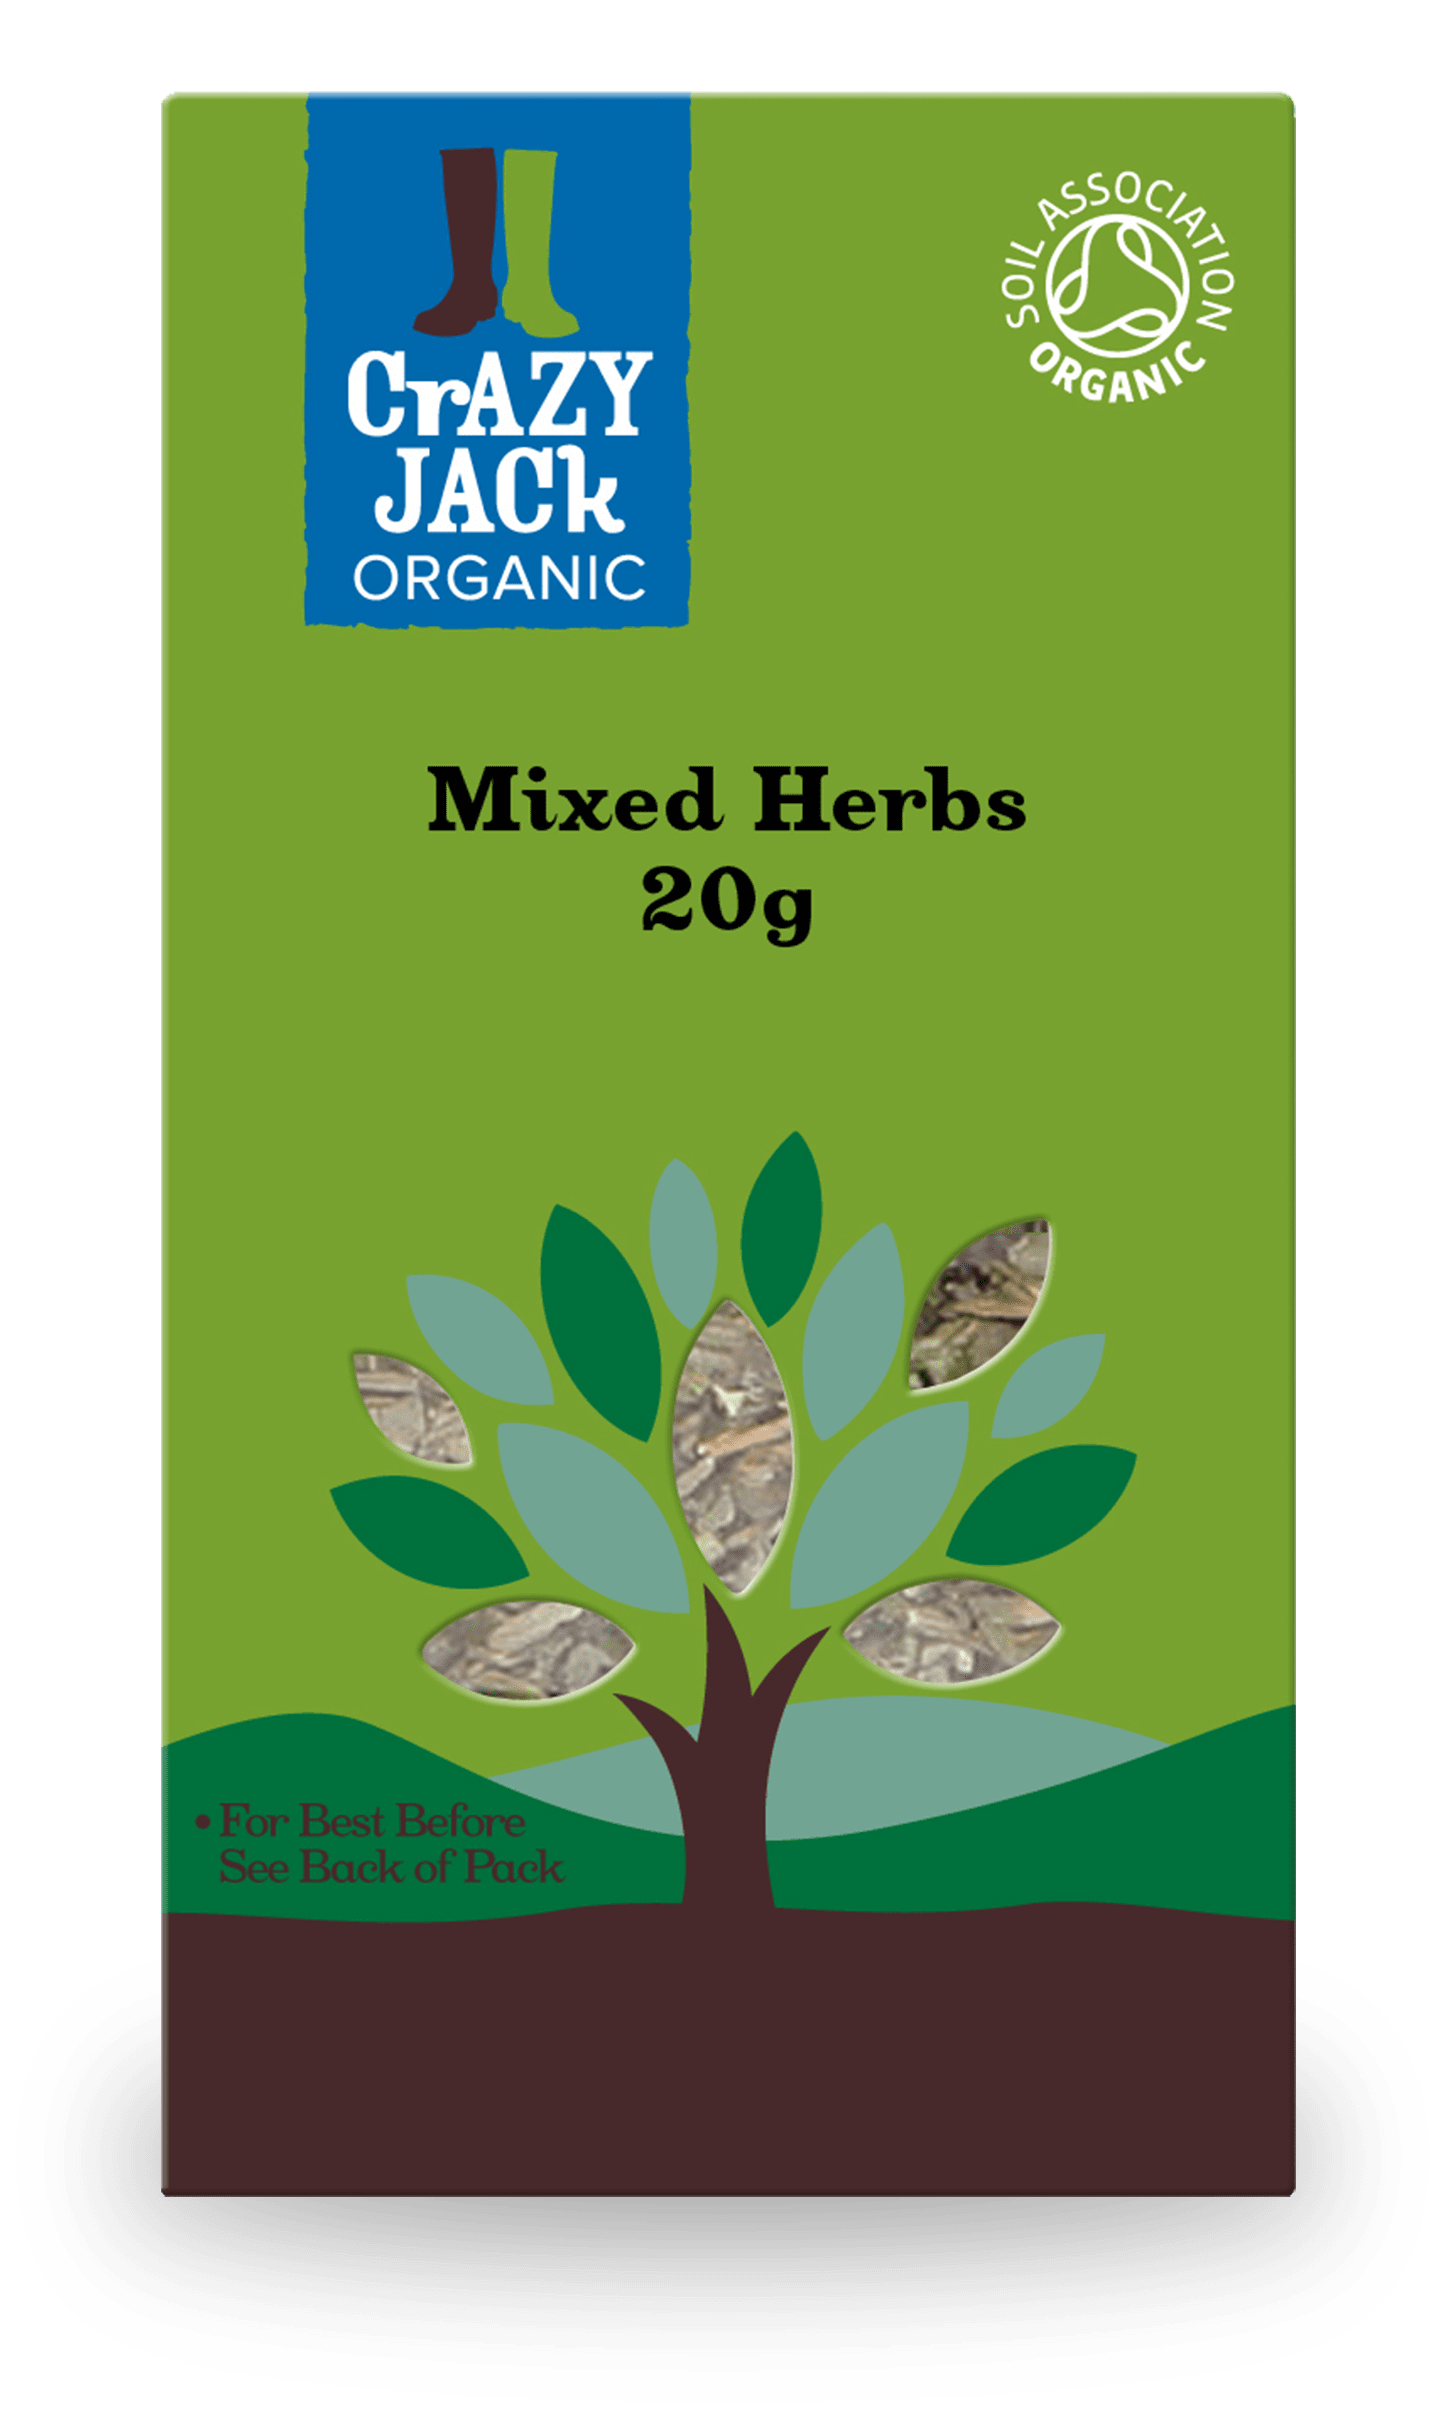 20g packet of organic mixed herbs